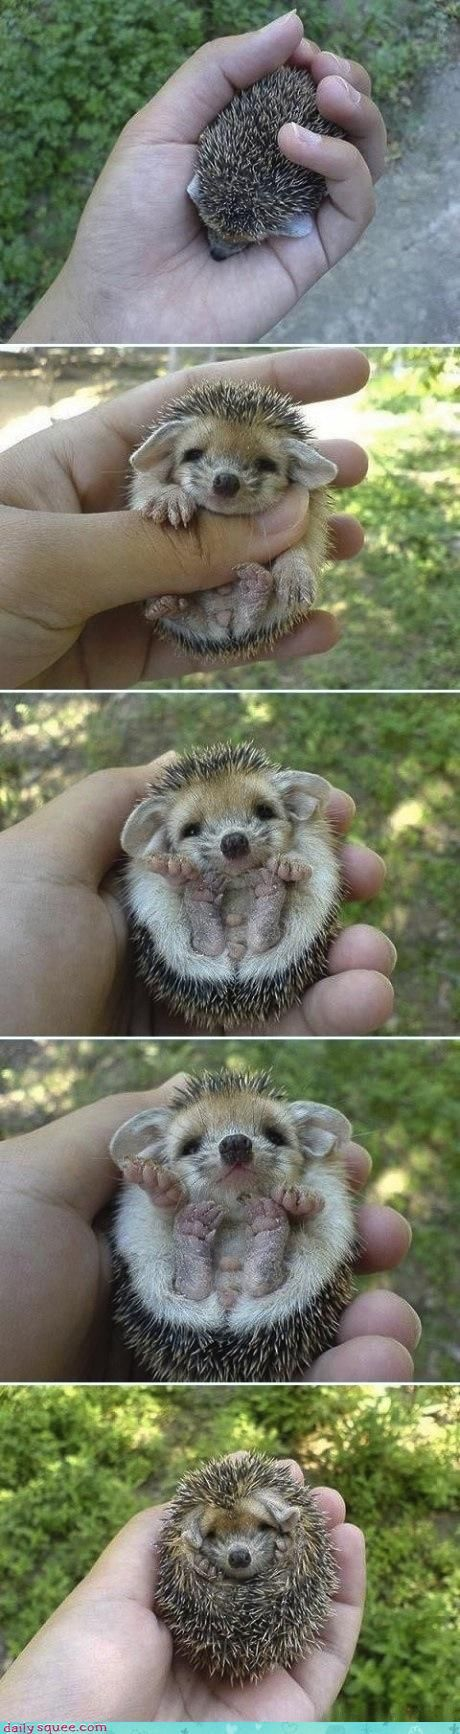 They're a little more spiky than fluffy, but you can't say that hedgehogs are not adorable! #hedgehogs #cute